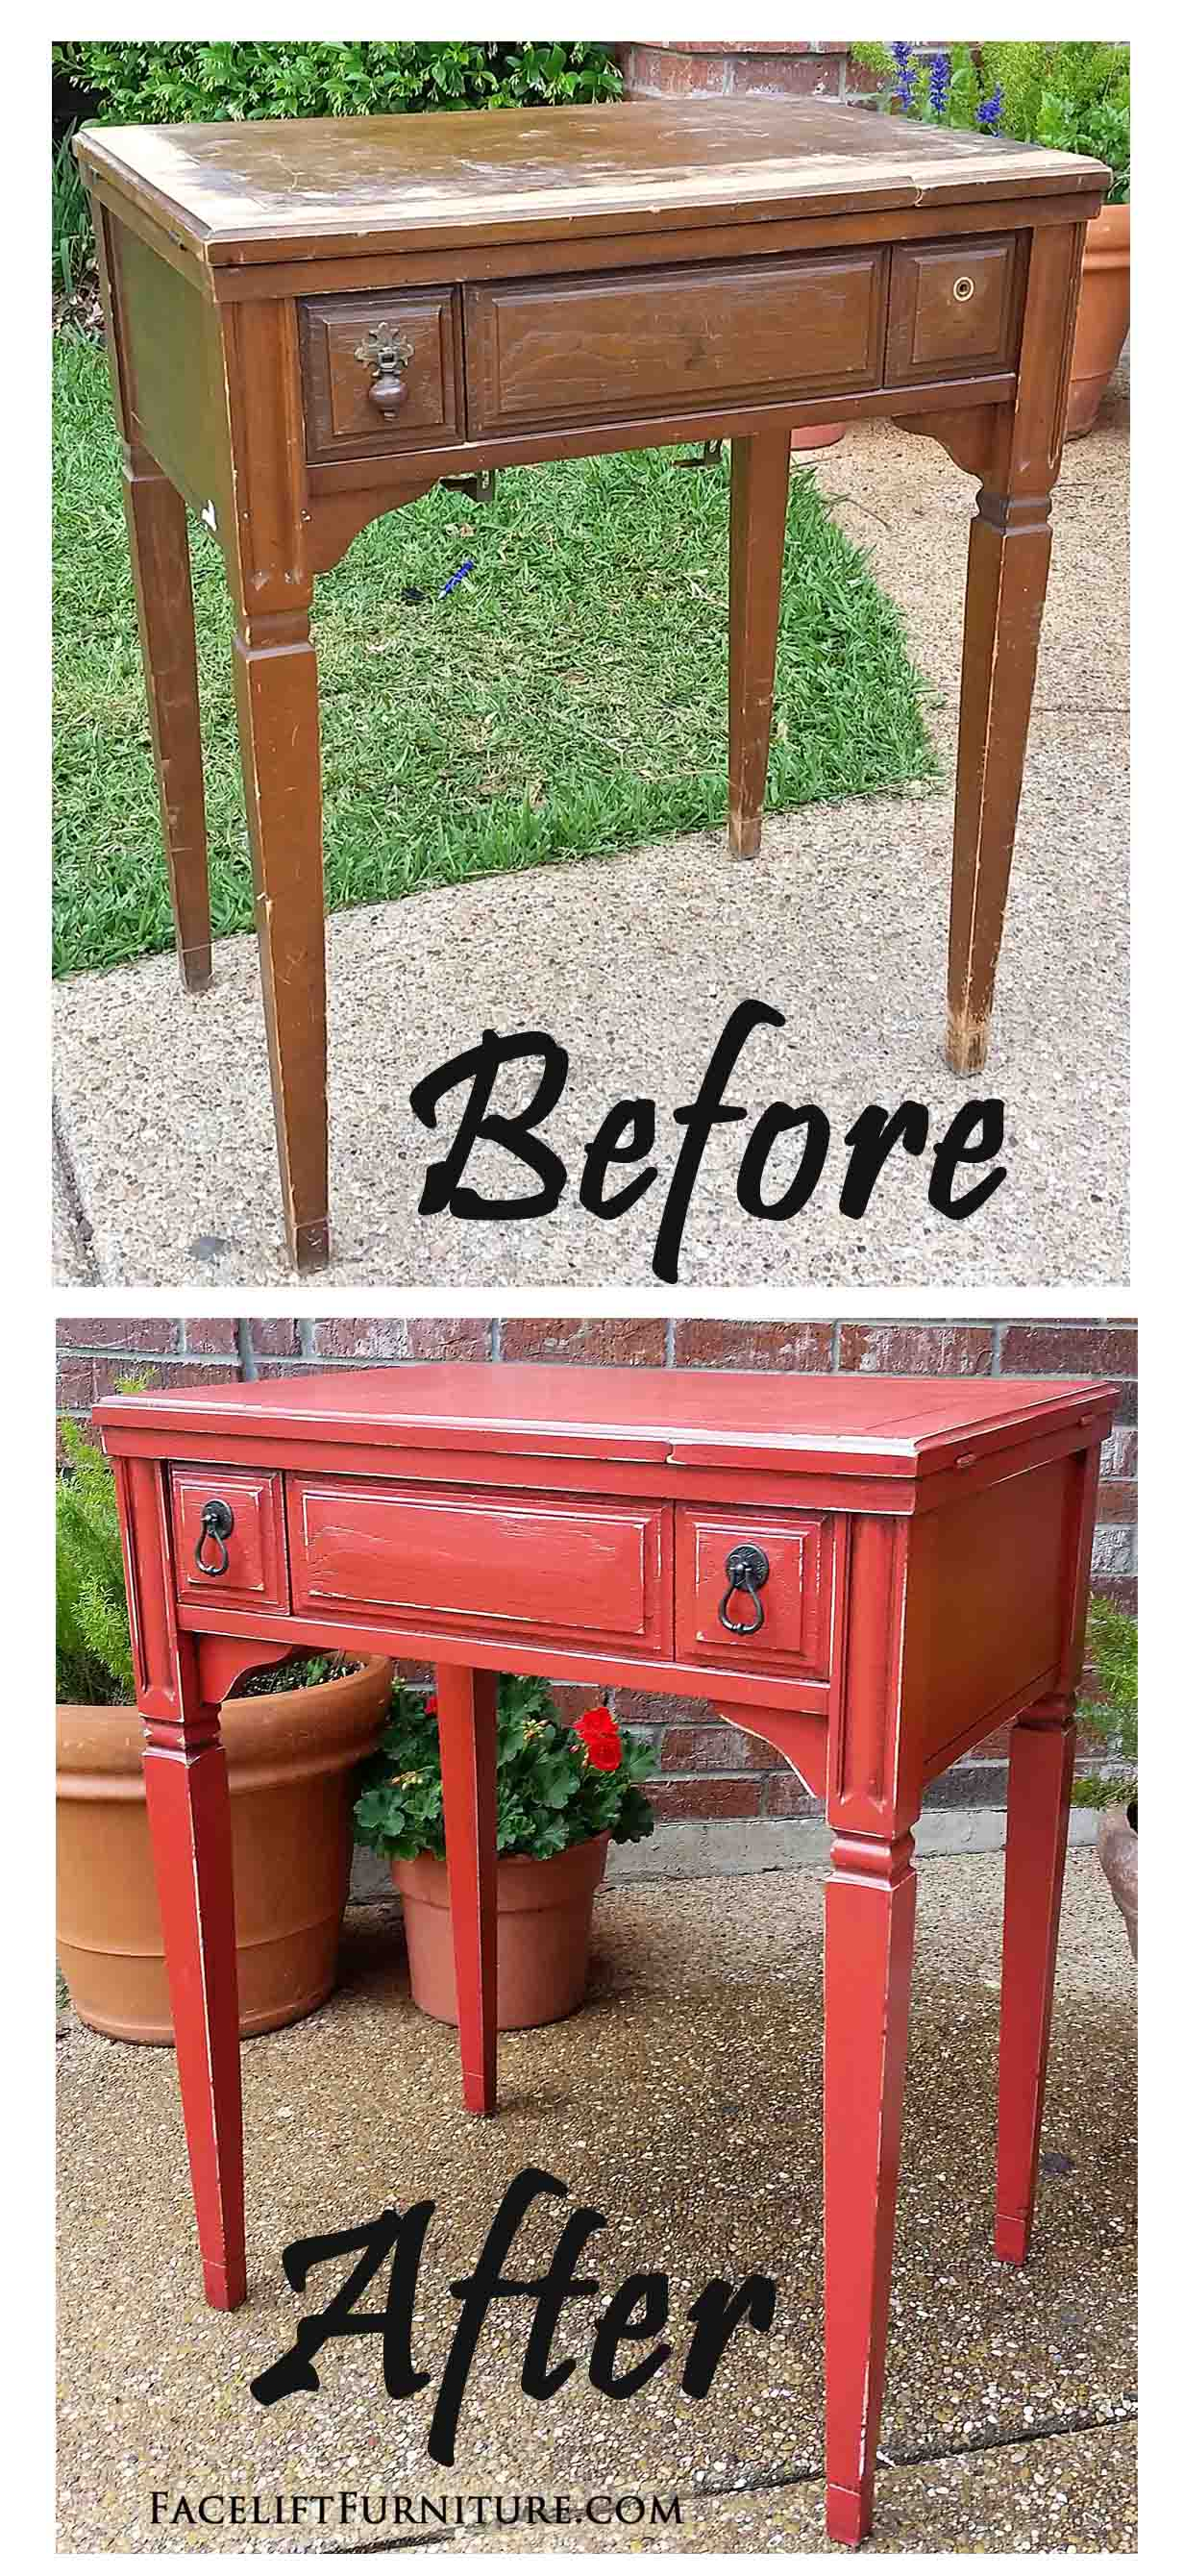 This Beat Up Old Sewing Table Was Given A New Life With Paint, Glaze And  Distressing.